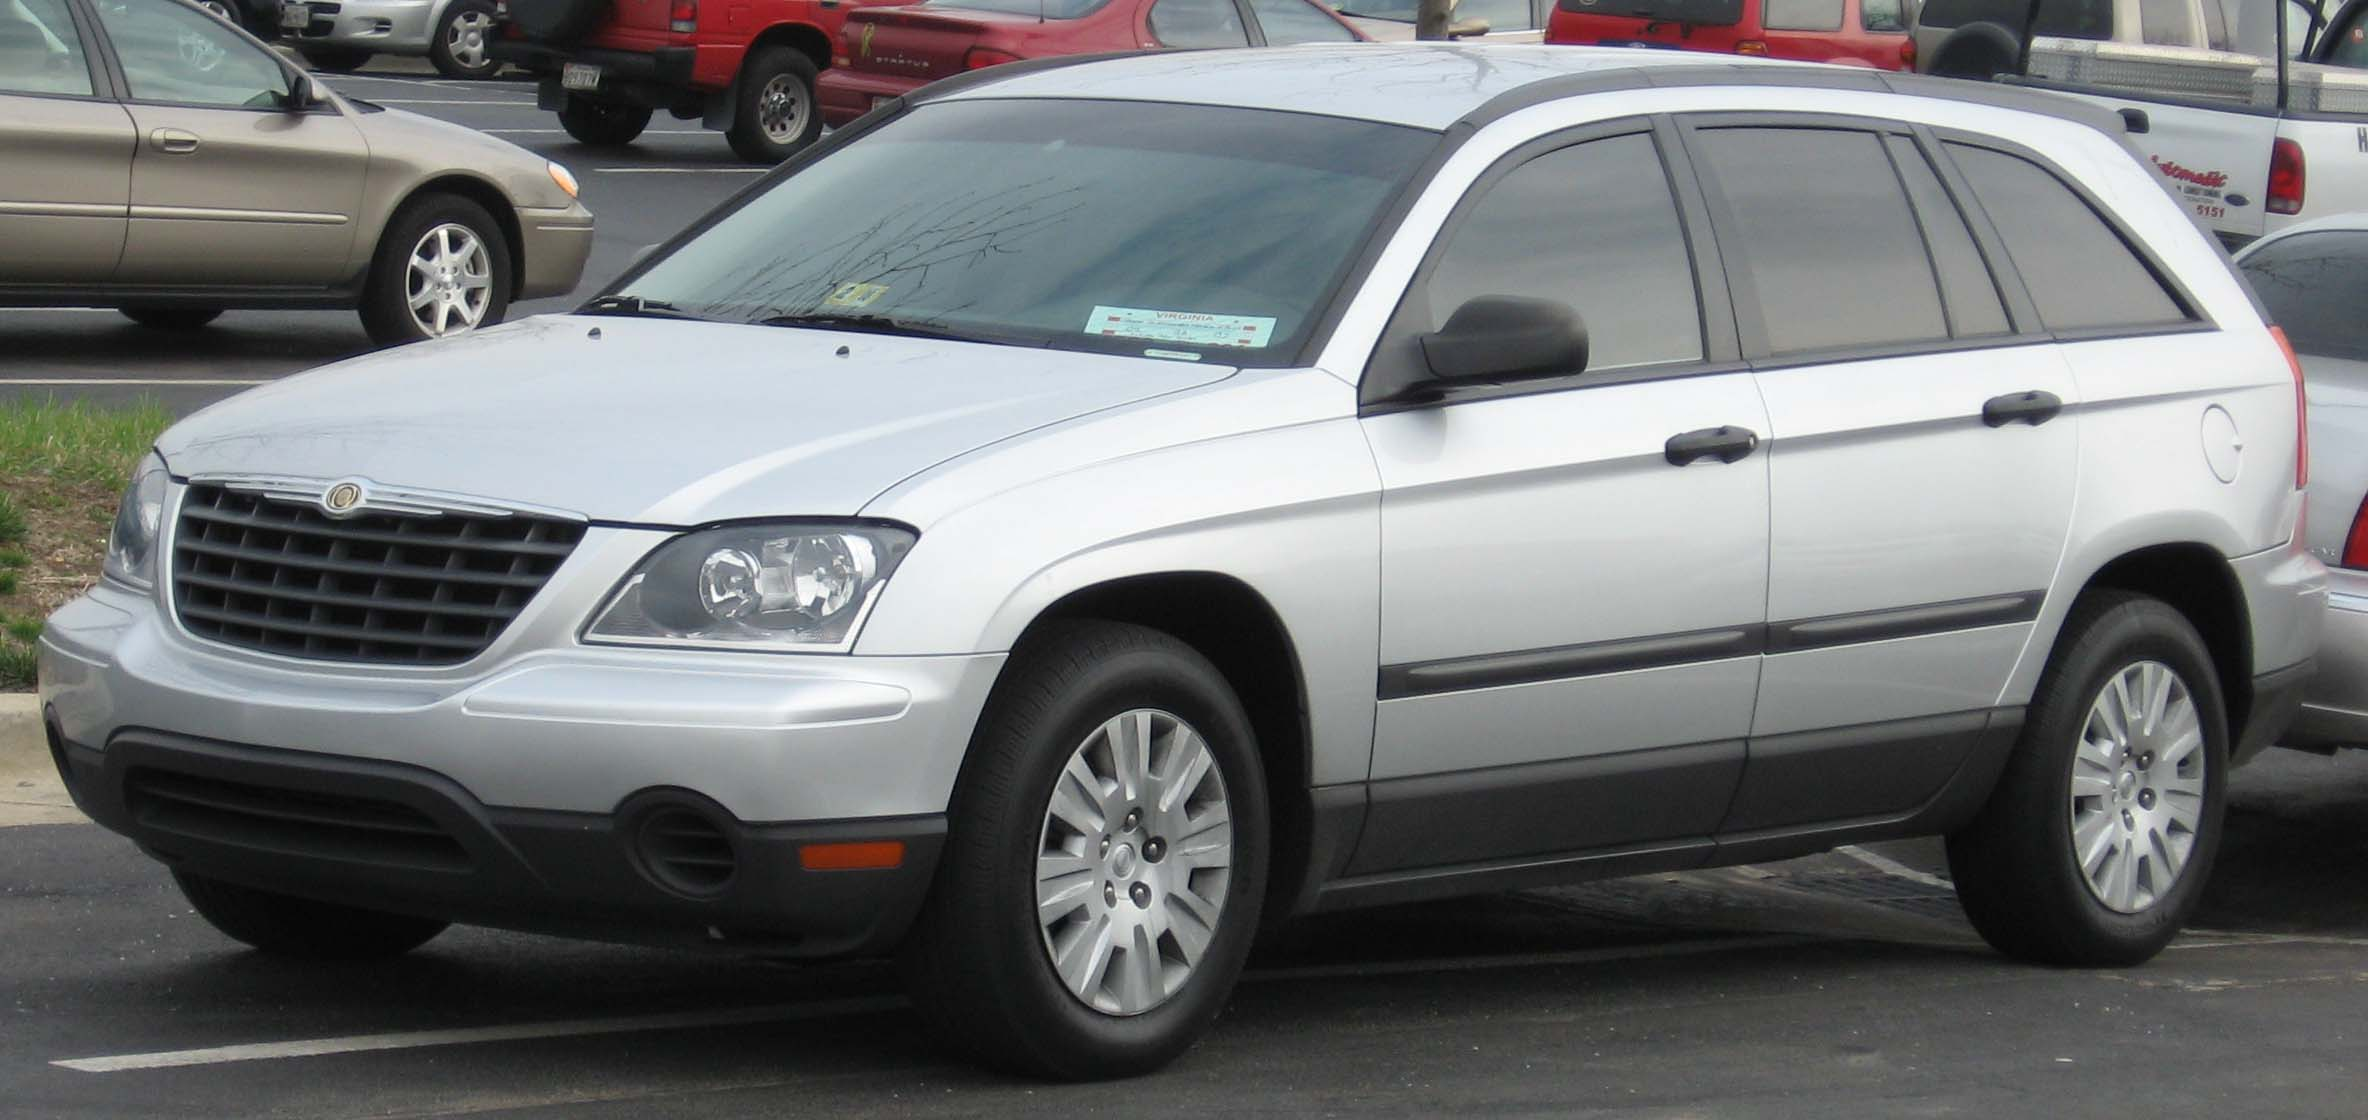 2005 Chrysler Pacifica #3